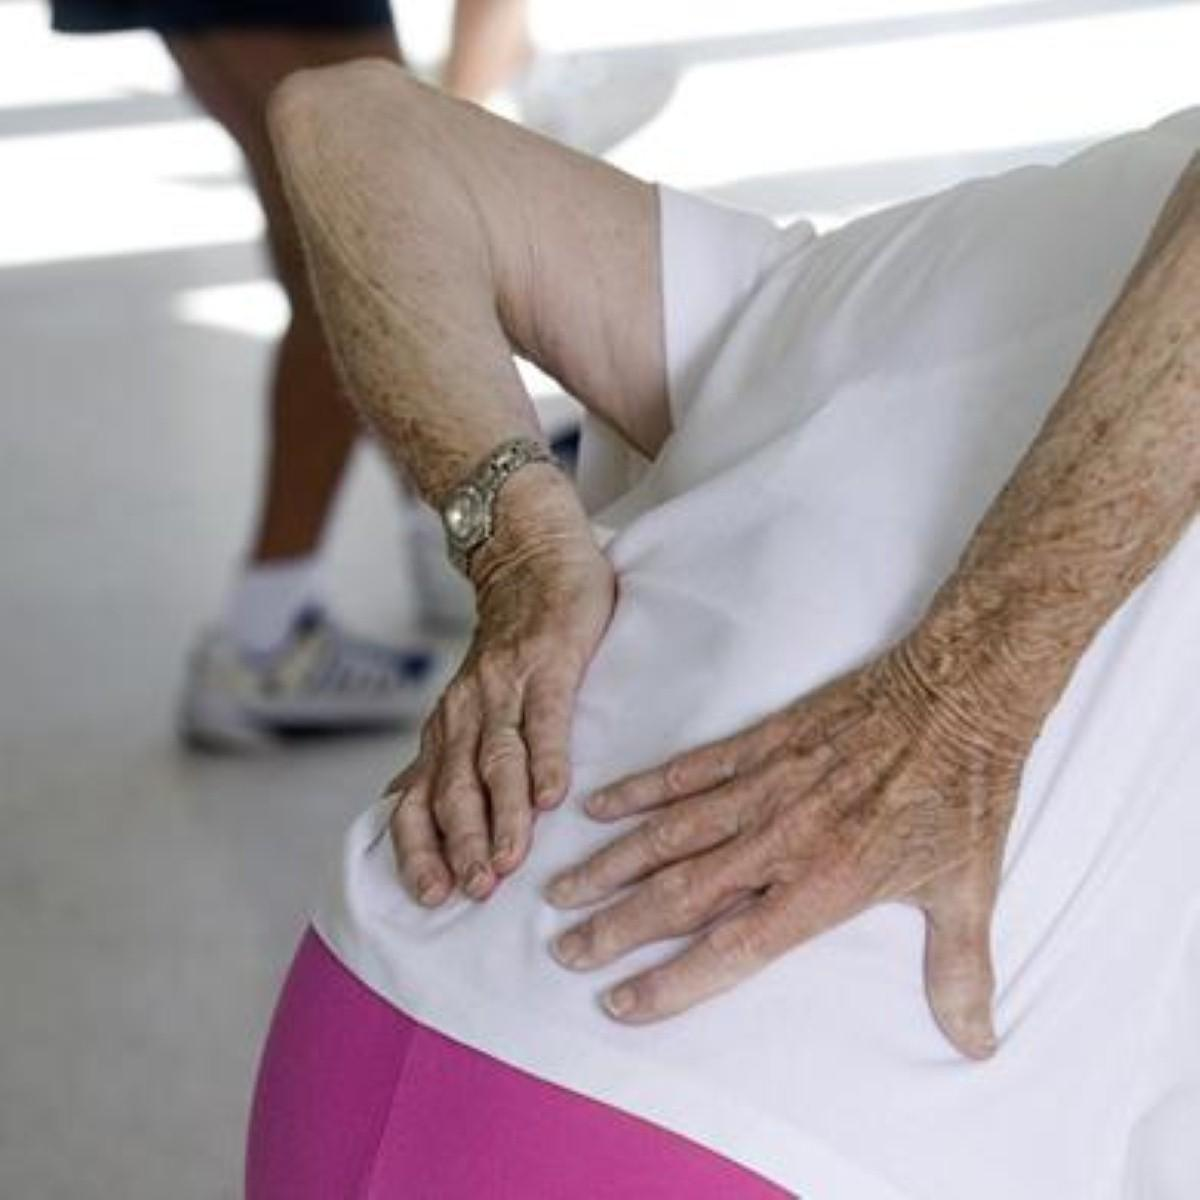 Functional activities 'help those with chronic pain'